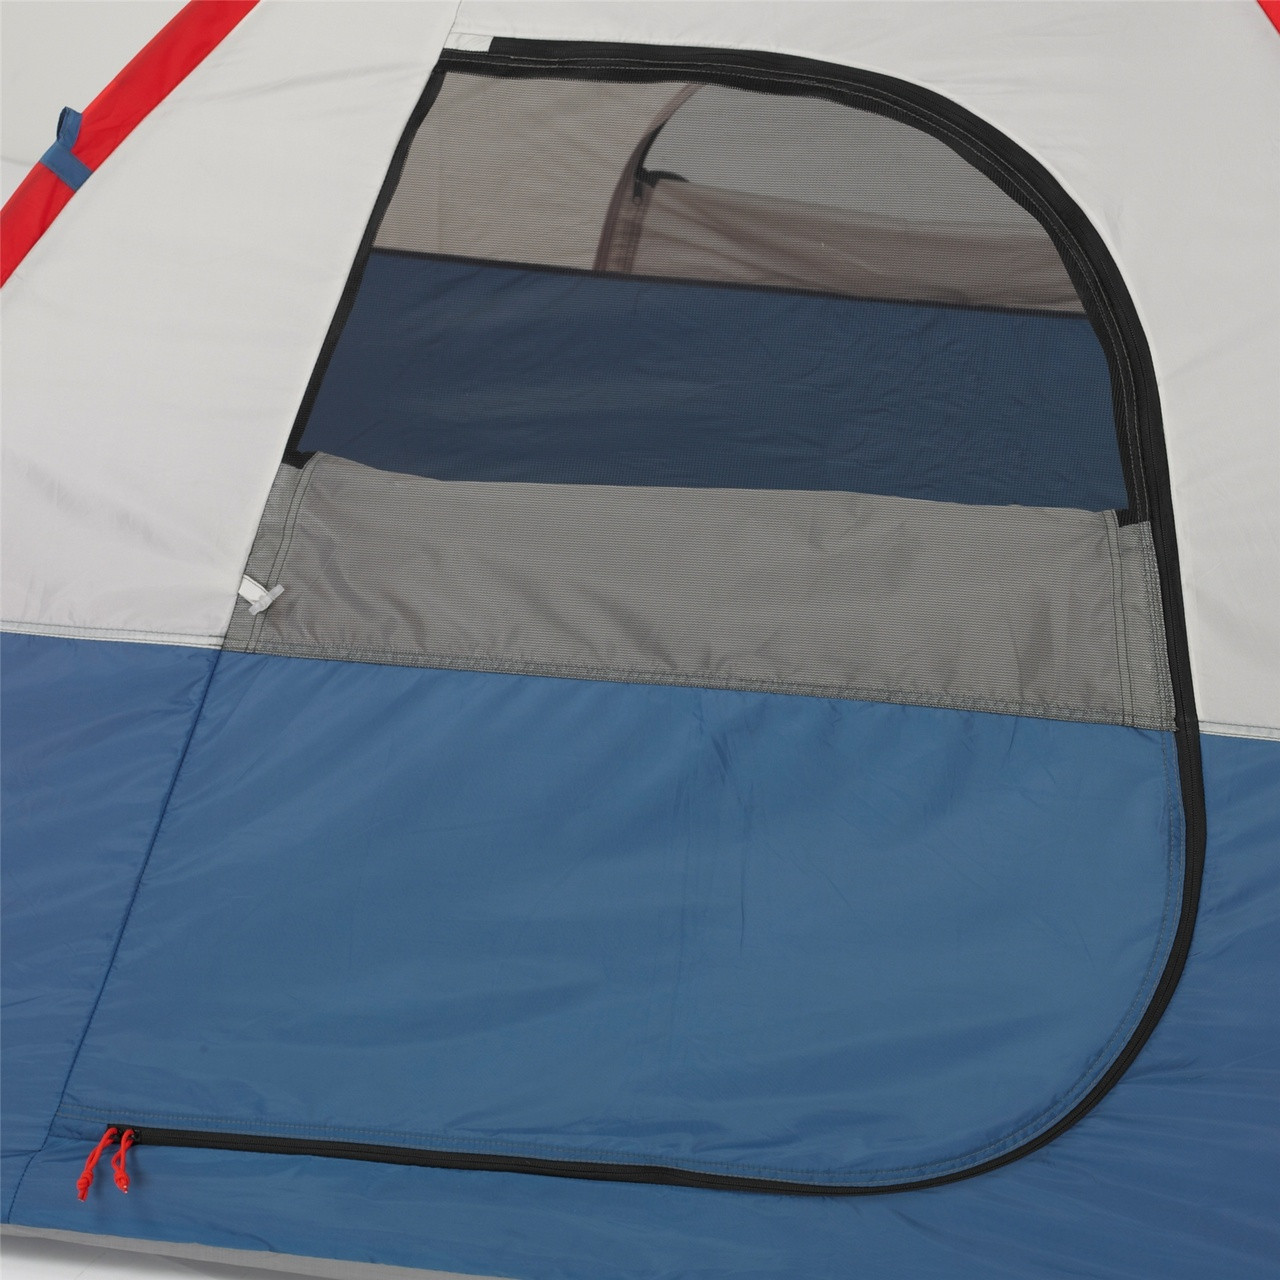 Close up view of the main door on the Wenzel Sprout 2 tent with the main screen door rolled open